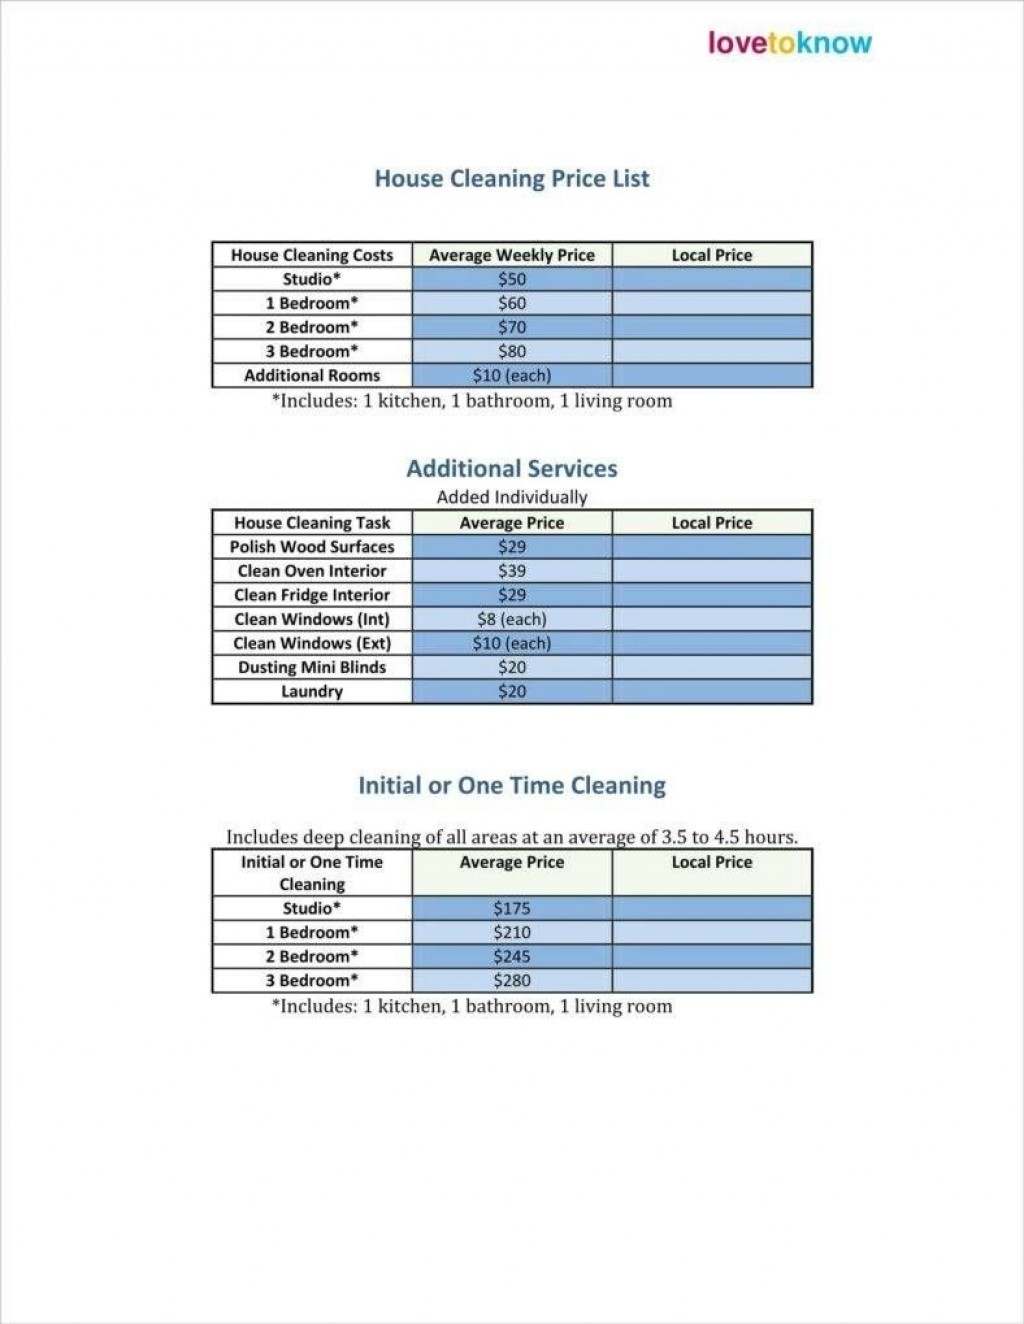 006 Excellent Cleaning Service Price List Template High Def  Commercial PdfLarge